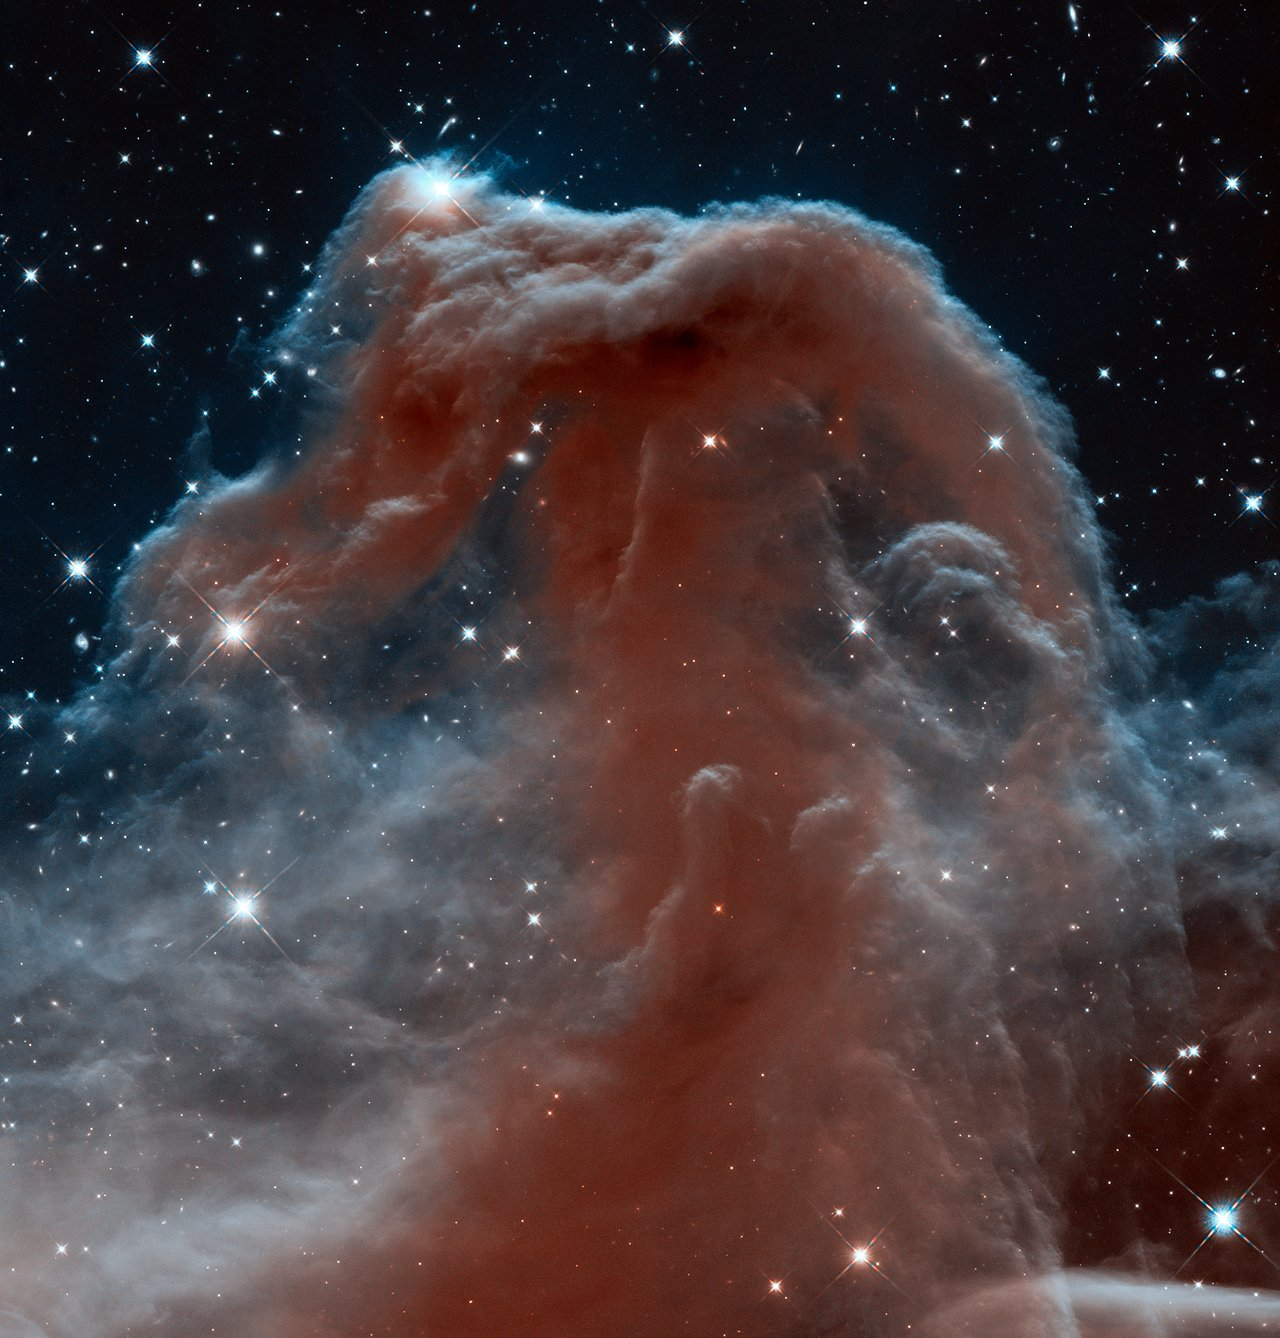 New infrared view of the Horsehead Nebula  Hubbles 23rd Anniversary Image